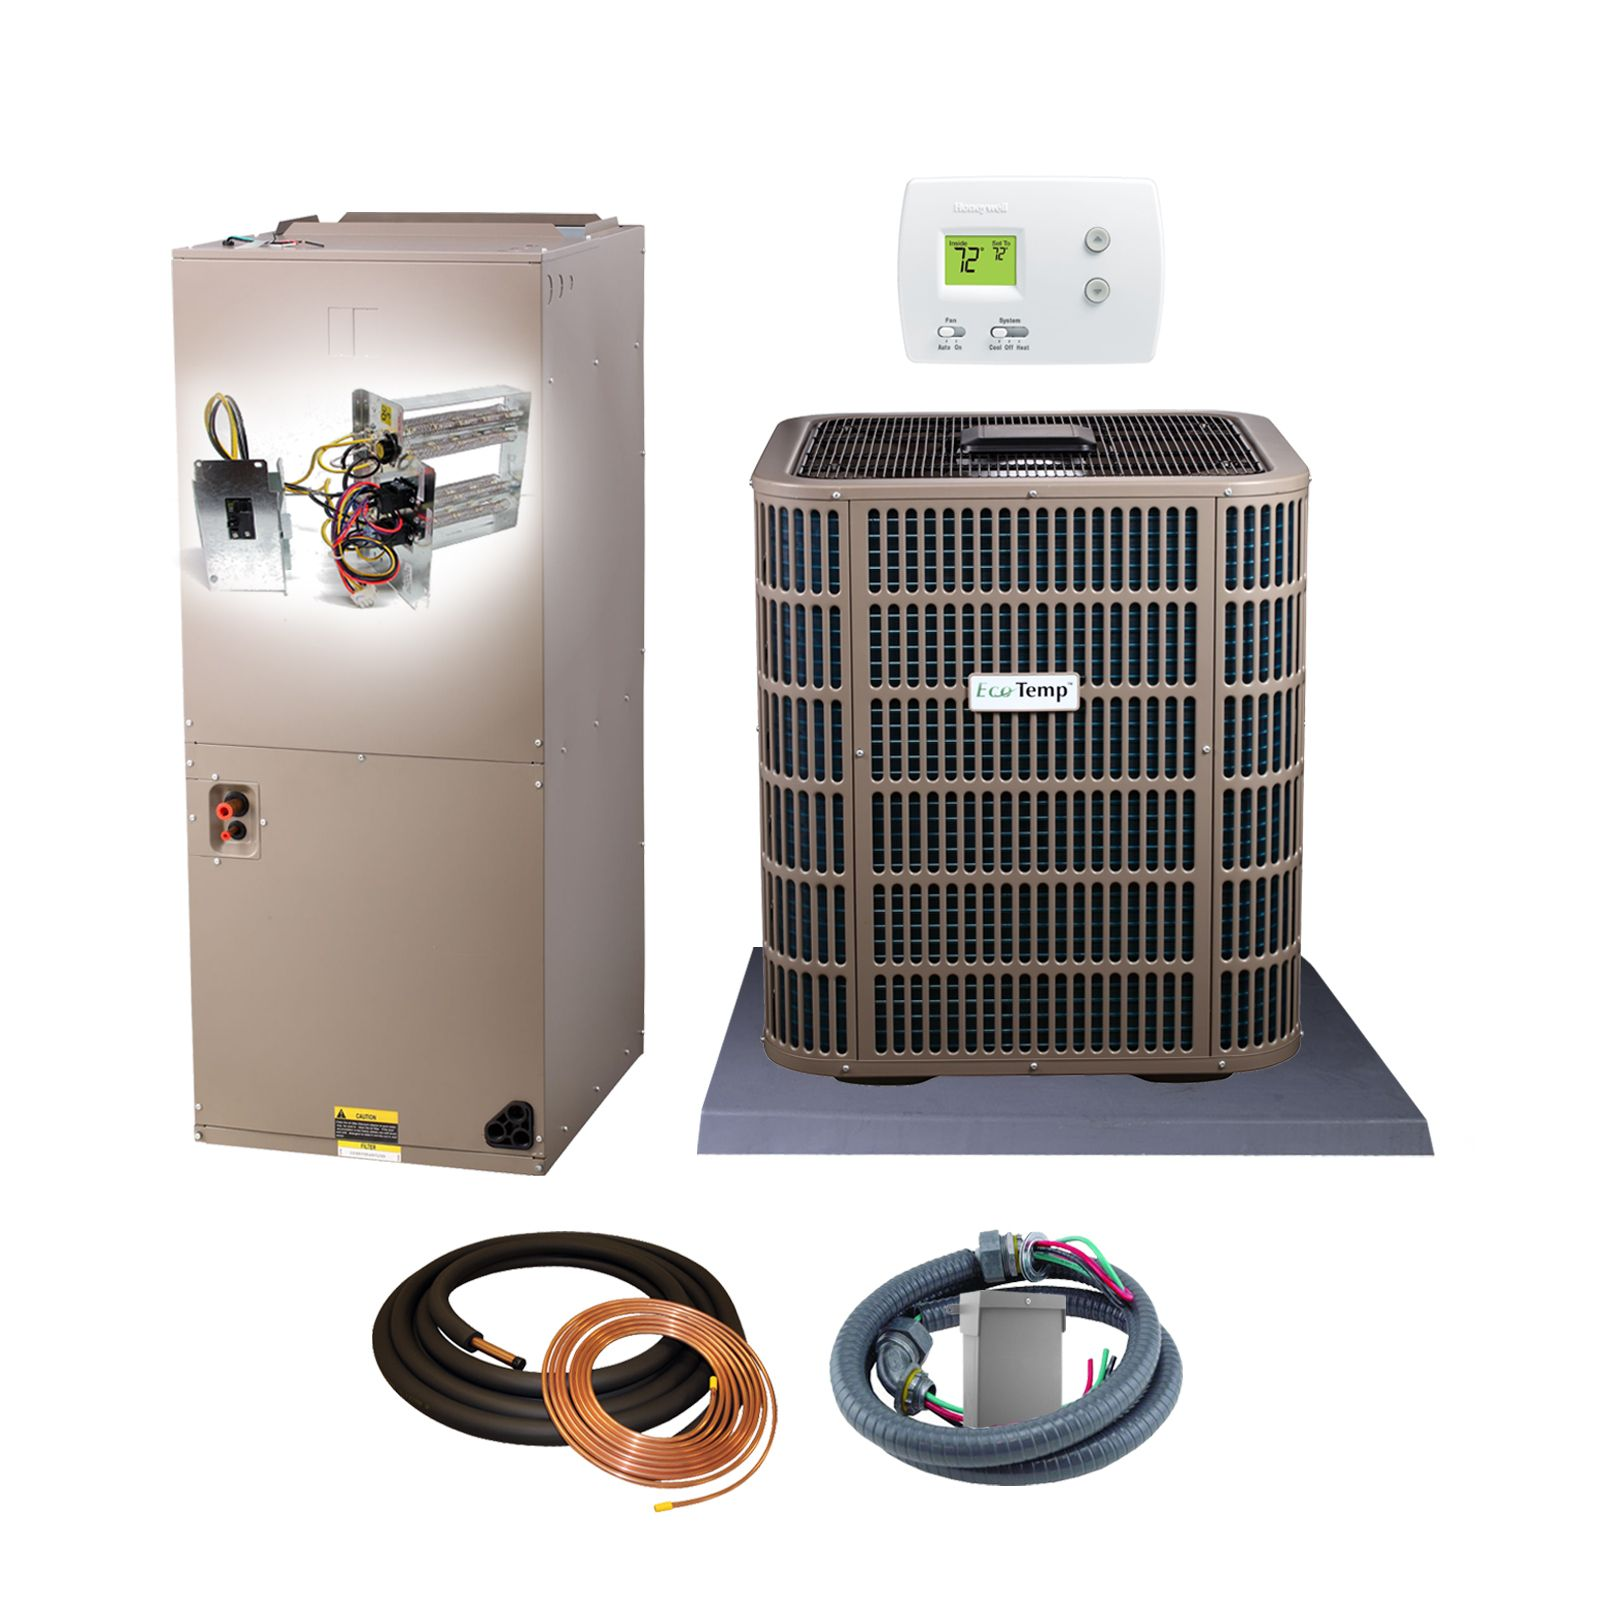 EcoTemp (AHRI 8270072) 3 Ton, 17.5 SEER/11.6 EER Monarch Series, Heat Pump Split System and Install Kit